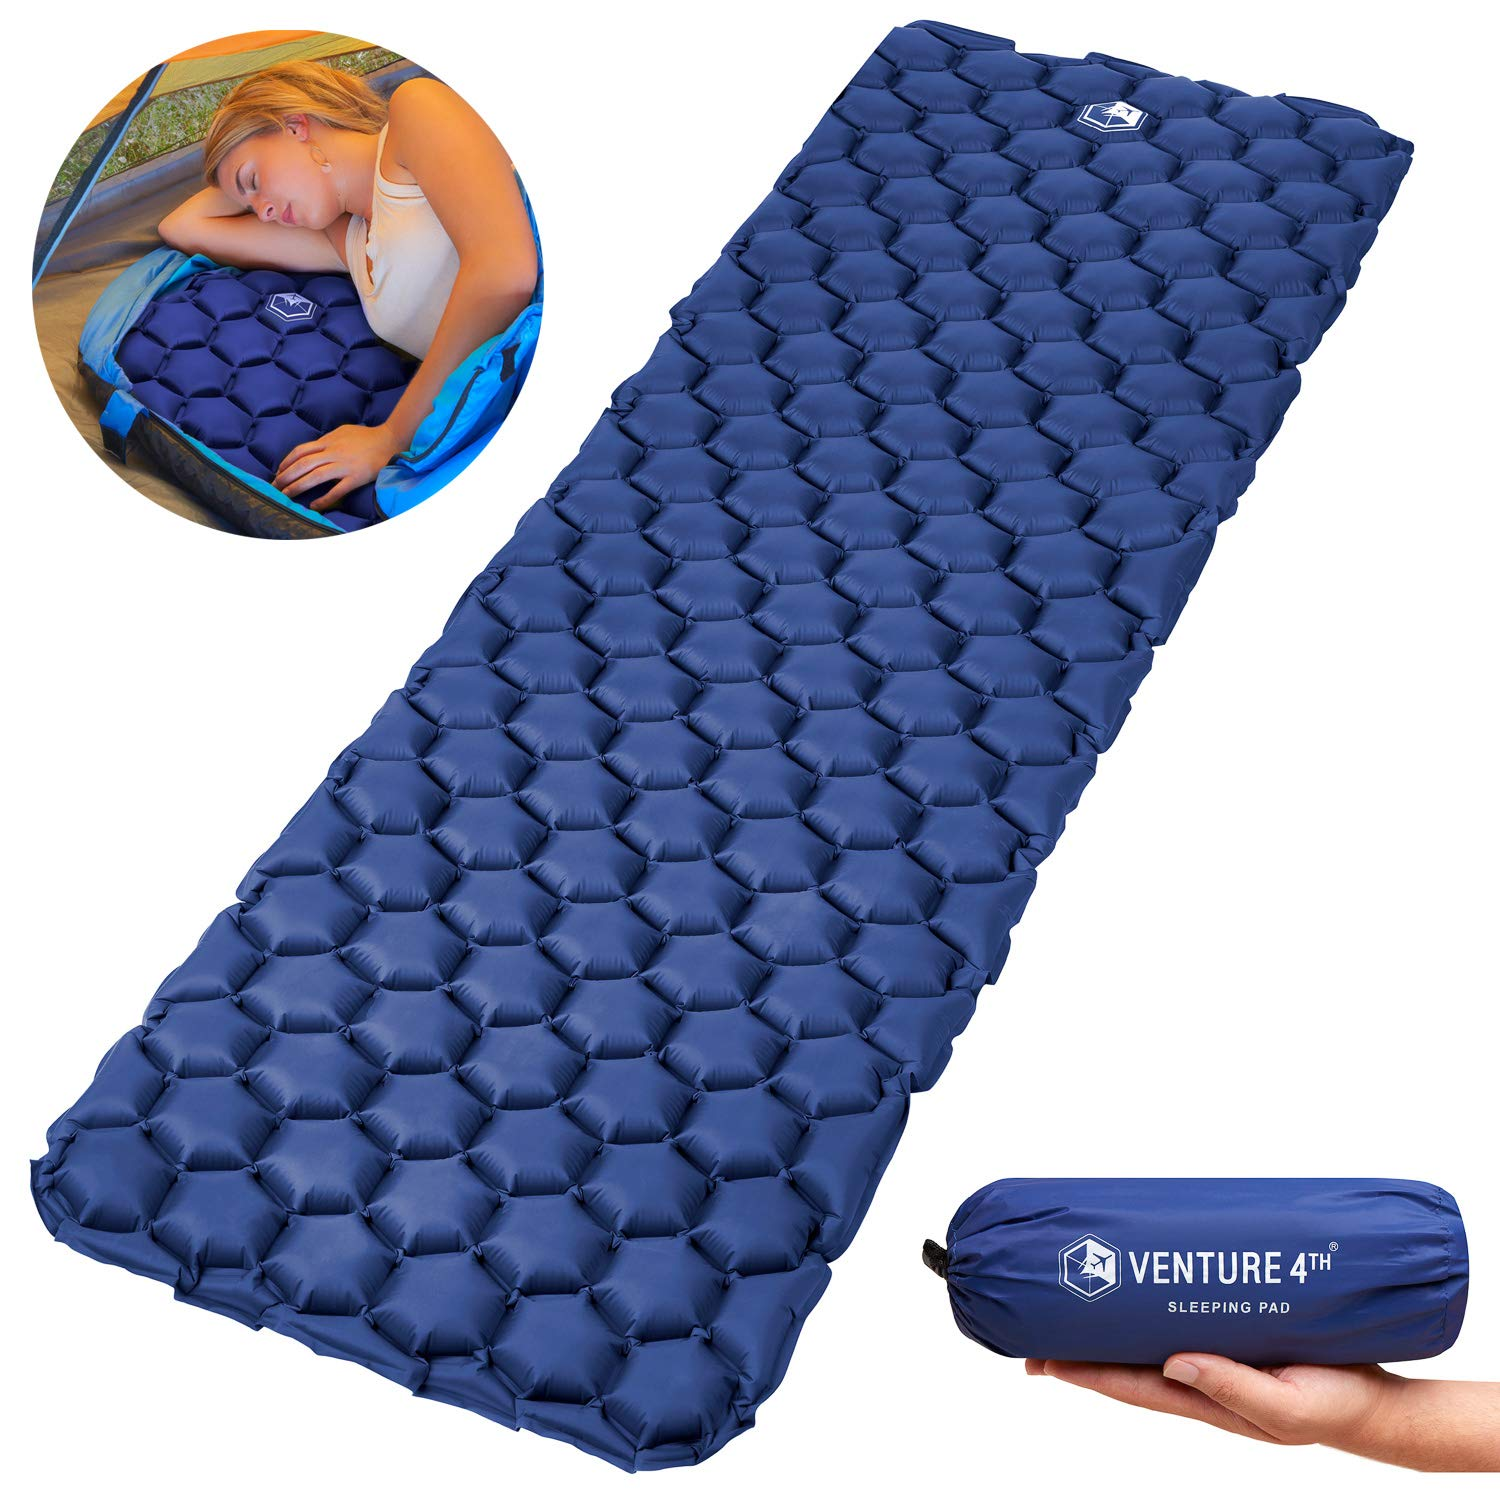 VENTURE 4TH Ultralight Air Sleeping Pad - Lightweight, Compact, Durable - Air Cell Technology for Added Stability and Comfort While Backpacking, Camping, and Traveling (Dark Blue) by VENTURE 4TH